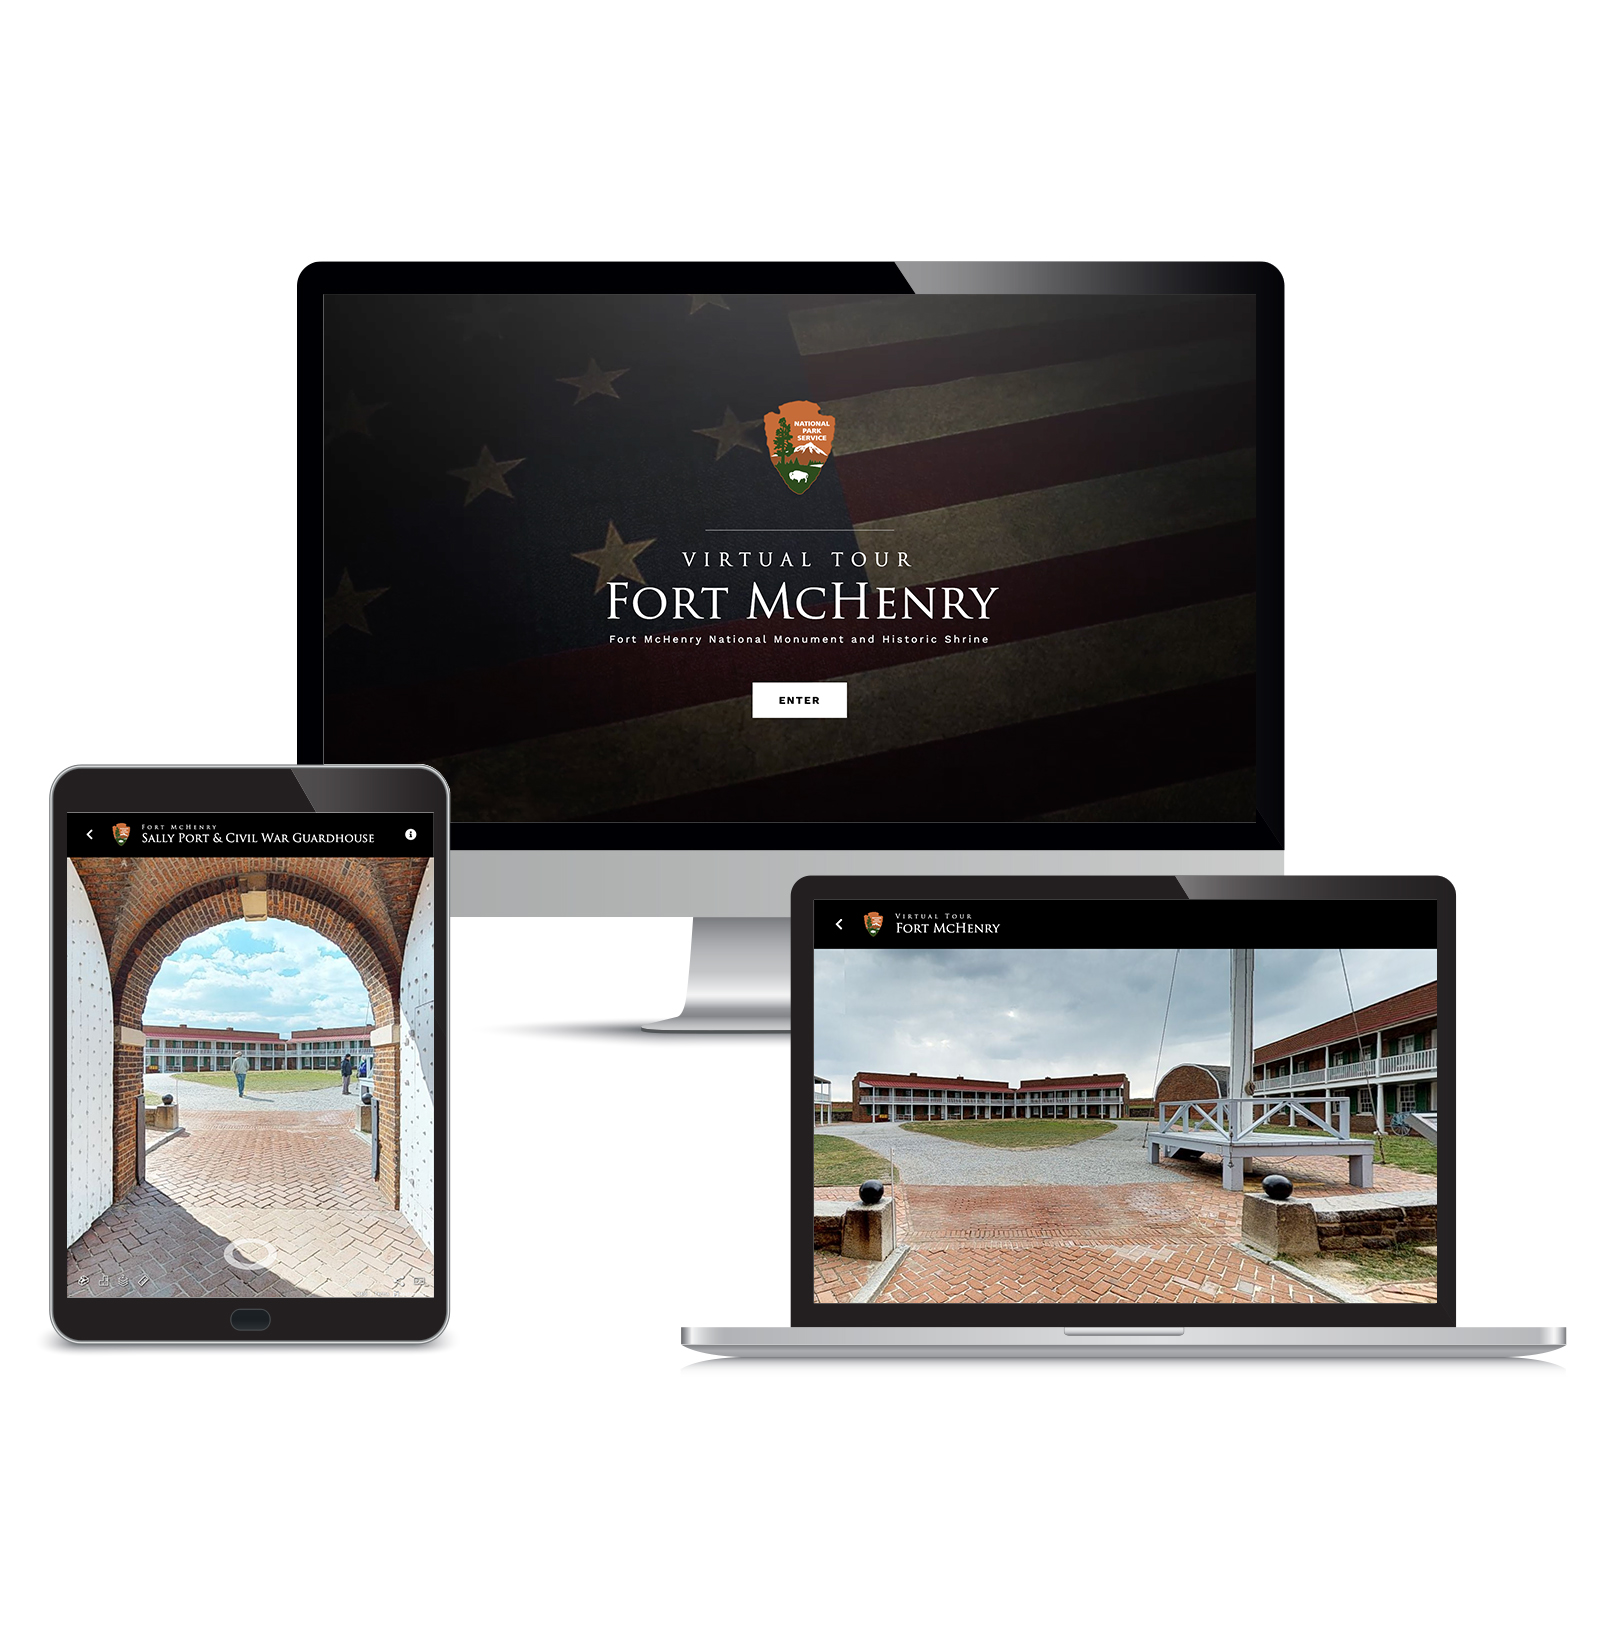 Fort McHenry Virtual Tour